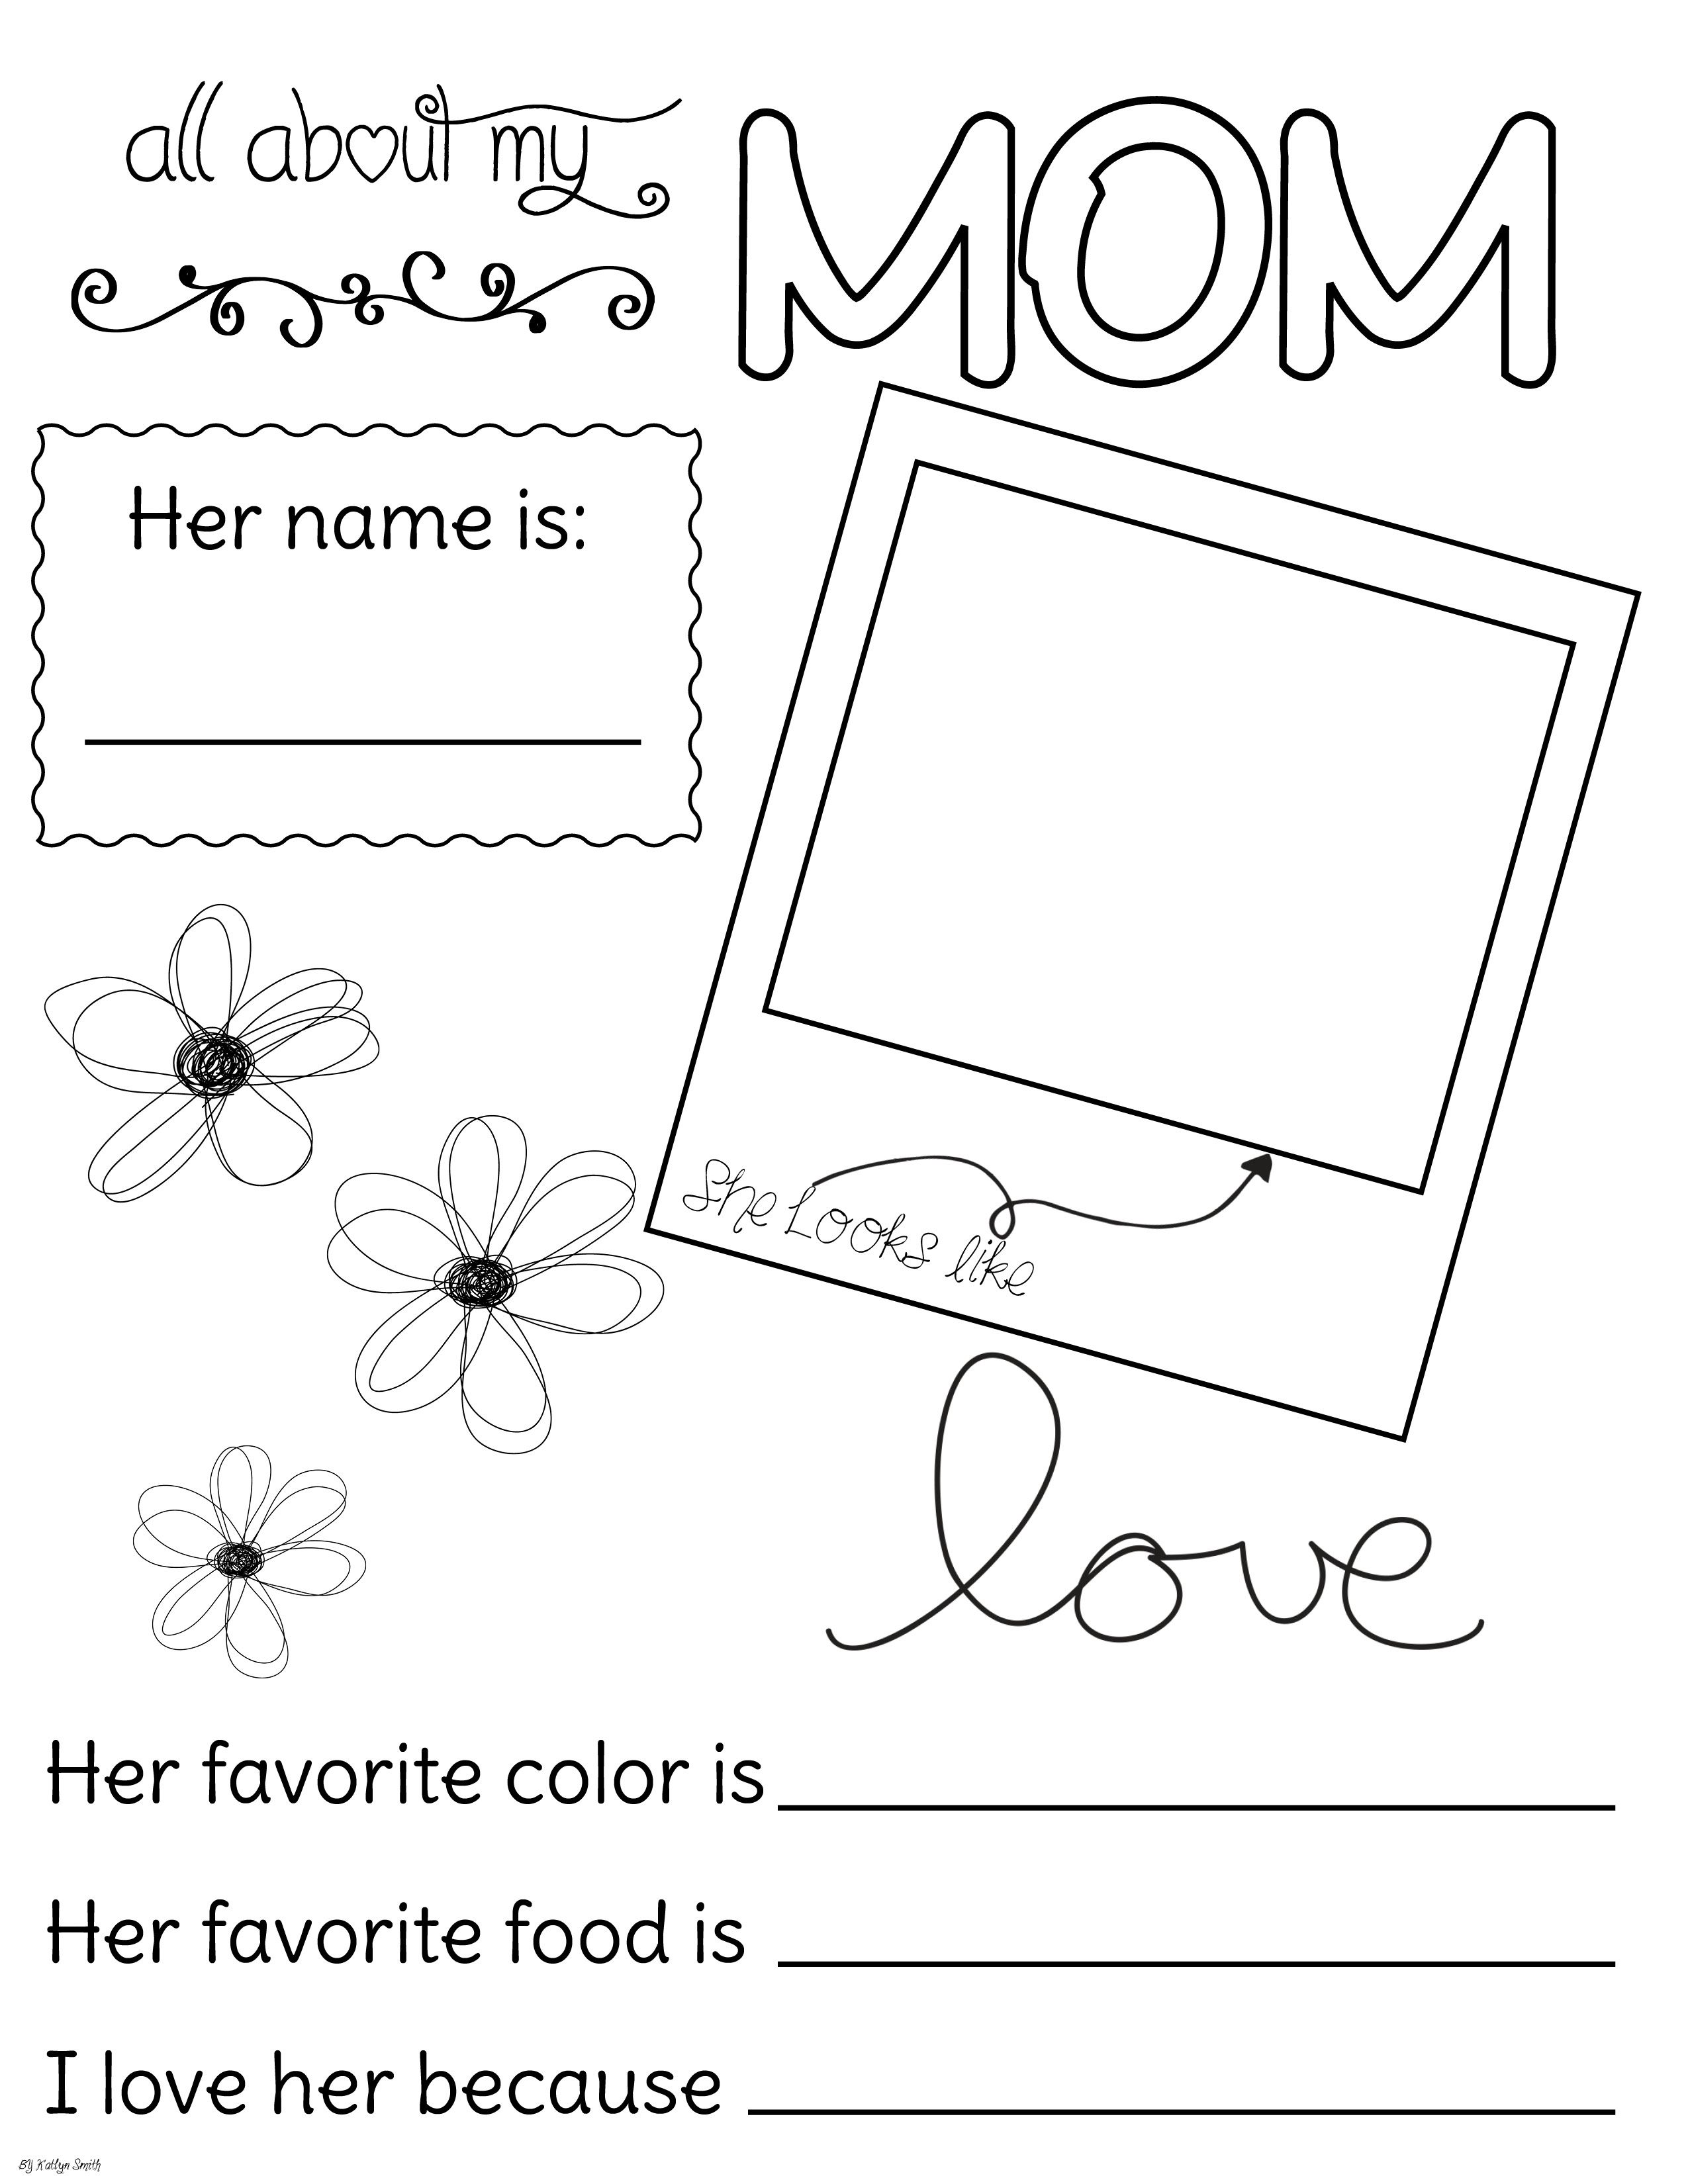 All About My Mom   Fill Out And Coloring Page   Motheru0027s Day   Church